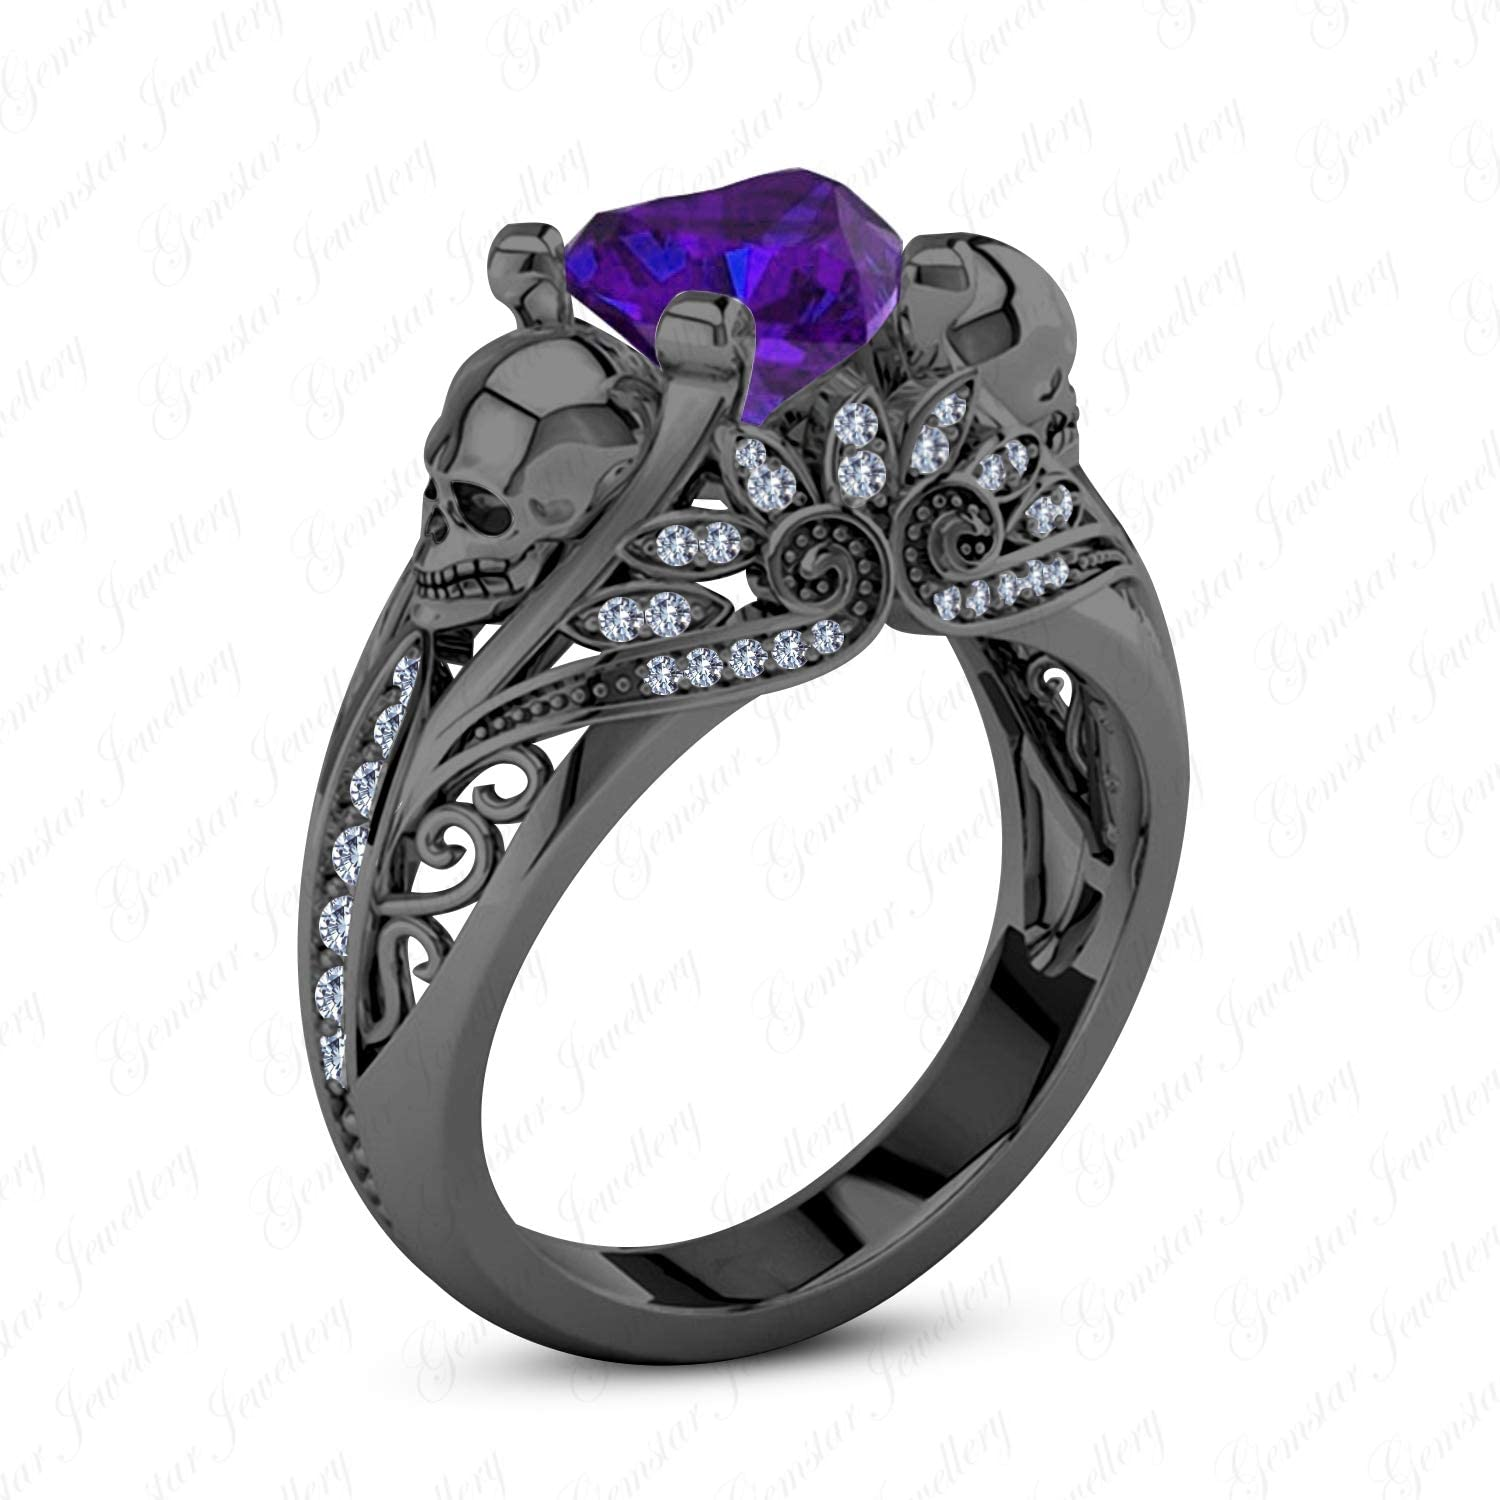 Gemstar Jewellery Exquisite Women's 925 Sterling Silver Skull Ring with Purple Amethyst Punk Jewelry